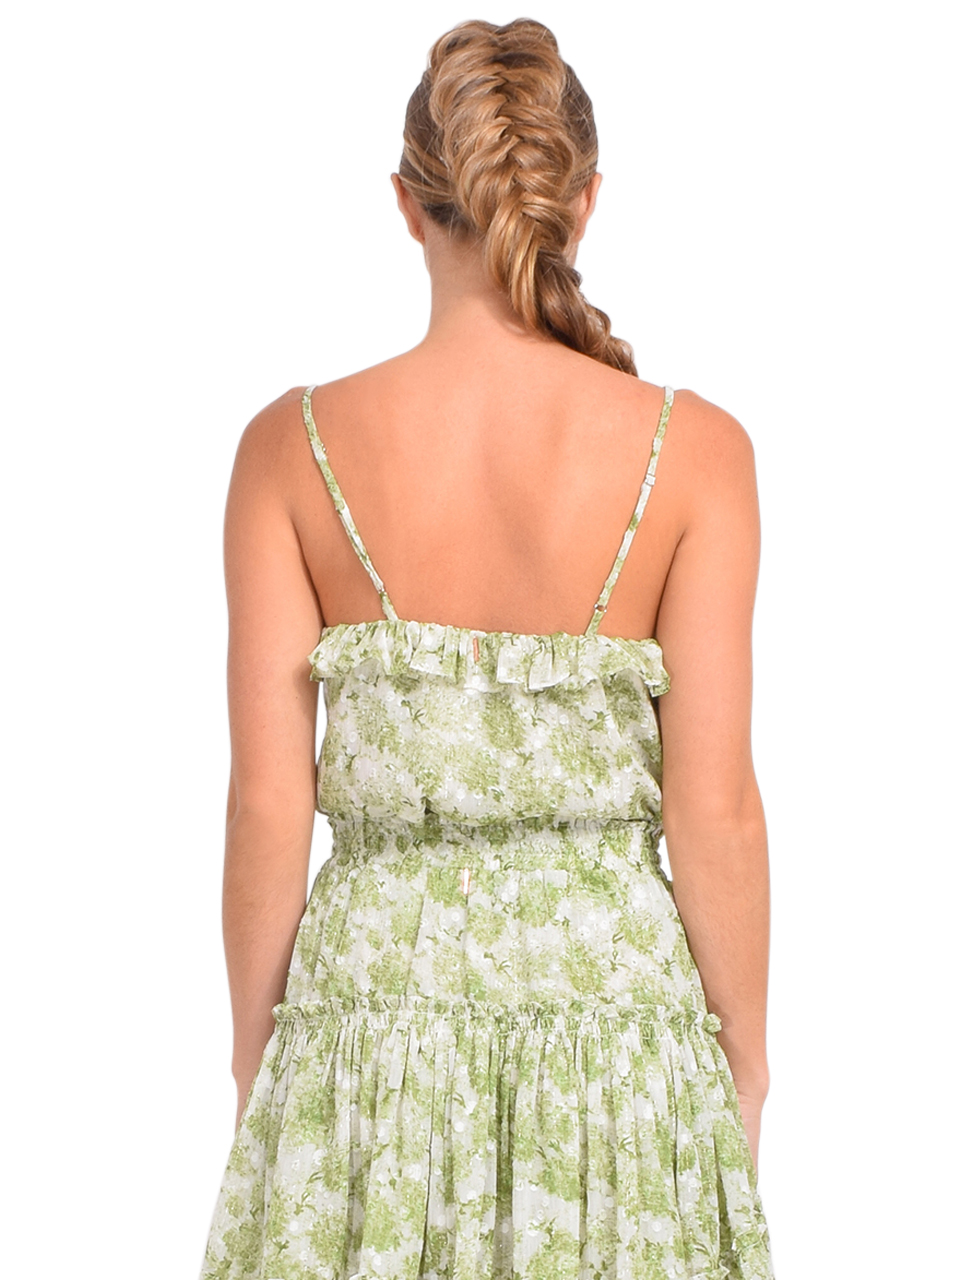 MISA Bambi Button Front Cami in Verdana Abstract Back View